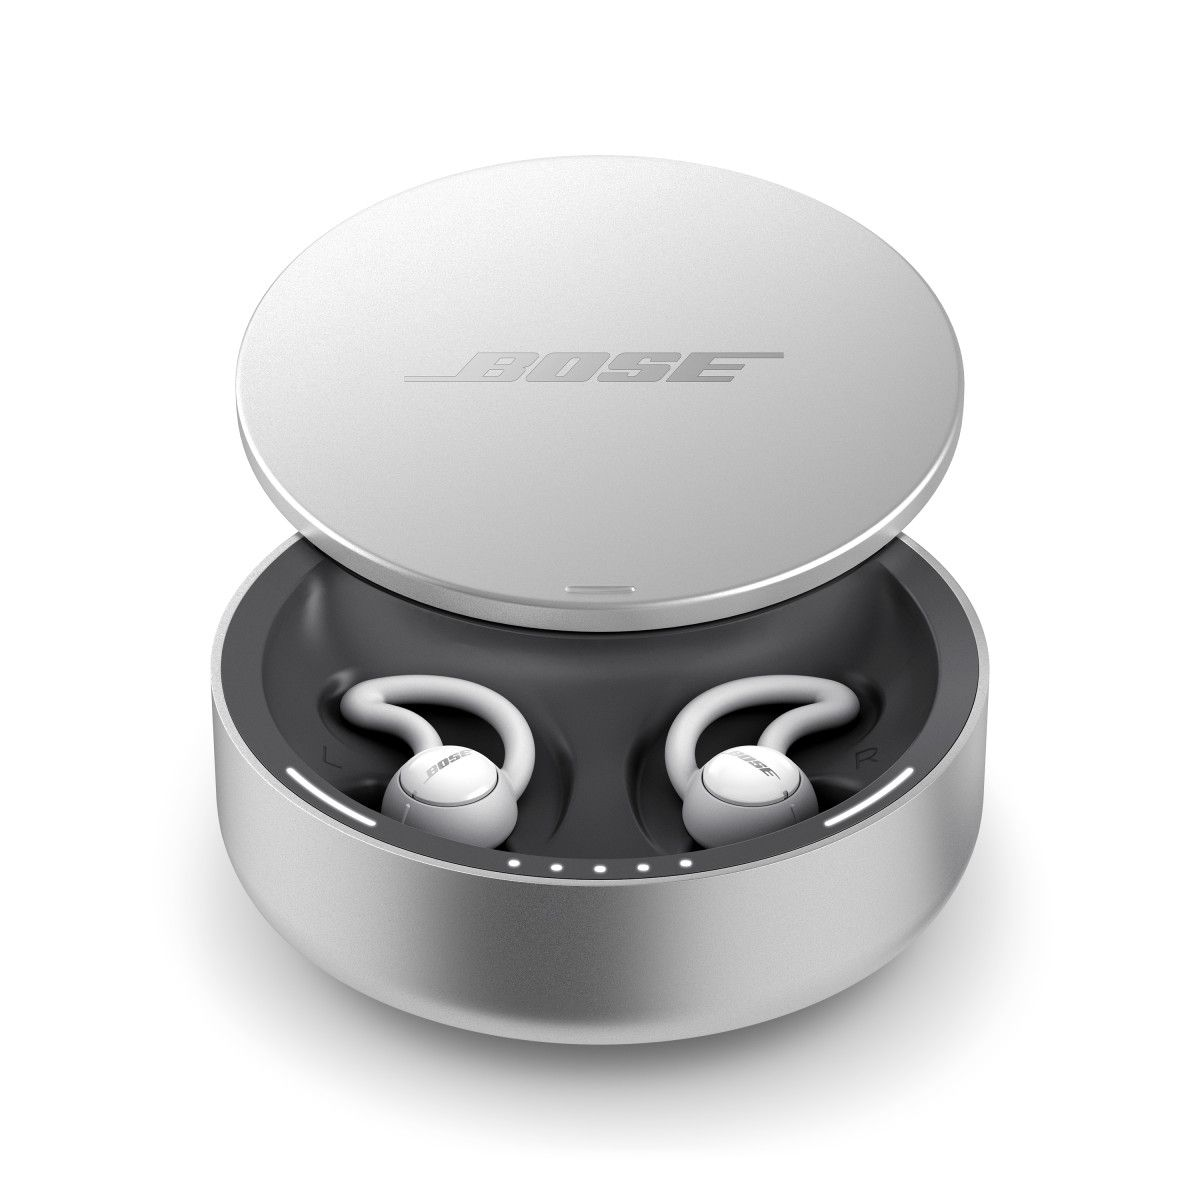 Bose officially launches its high-tech sleep companion, sleepbuds